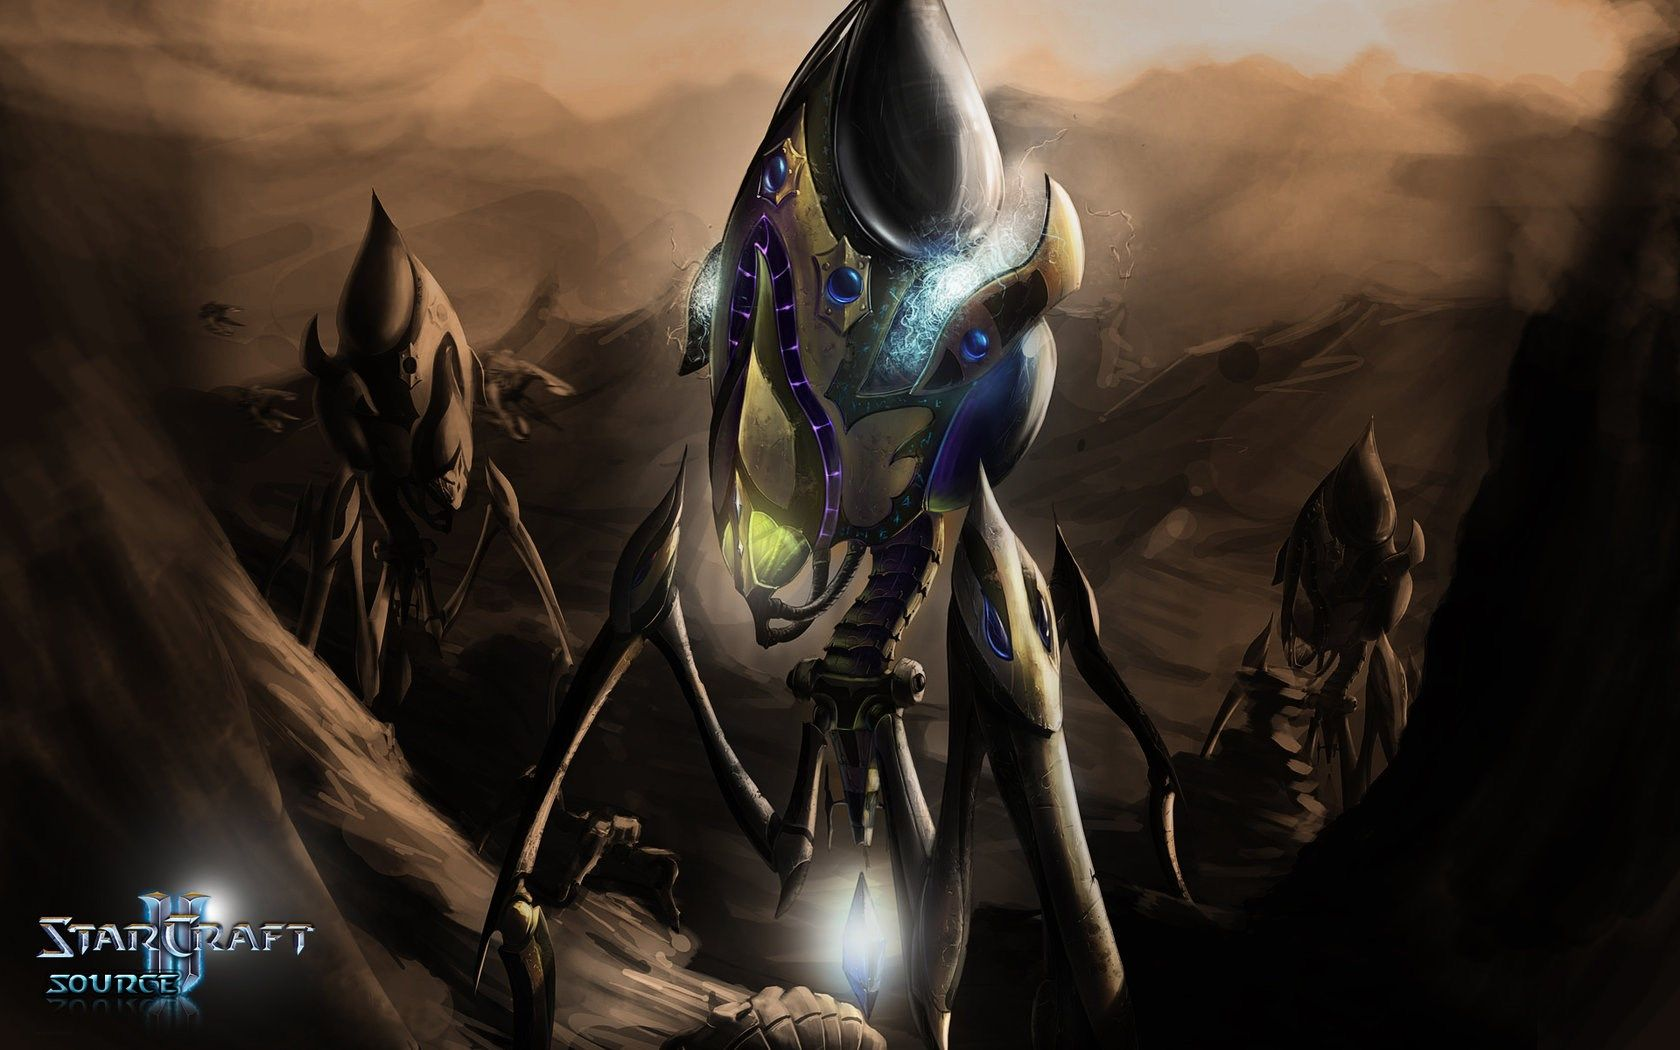 High Resolution Wallpapers = starcraft ii image, 1680x1050 (212 kB